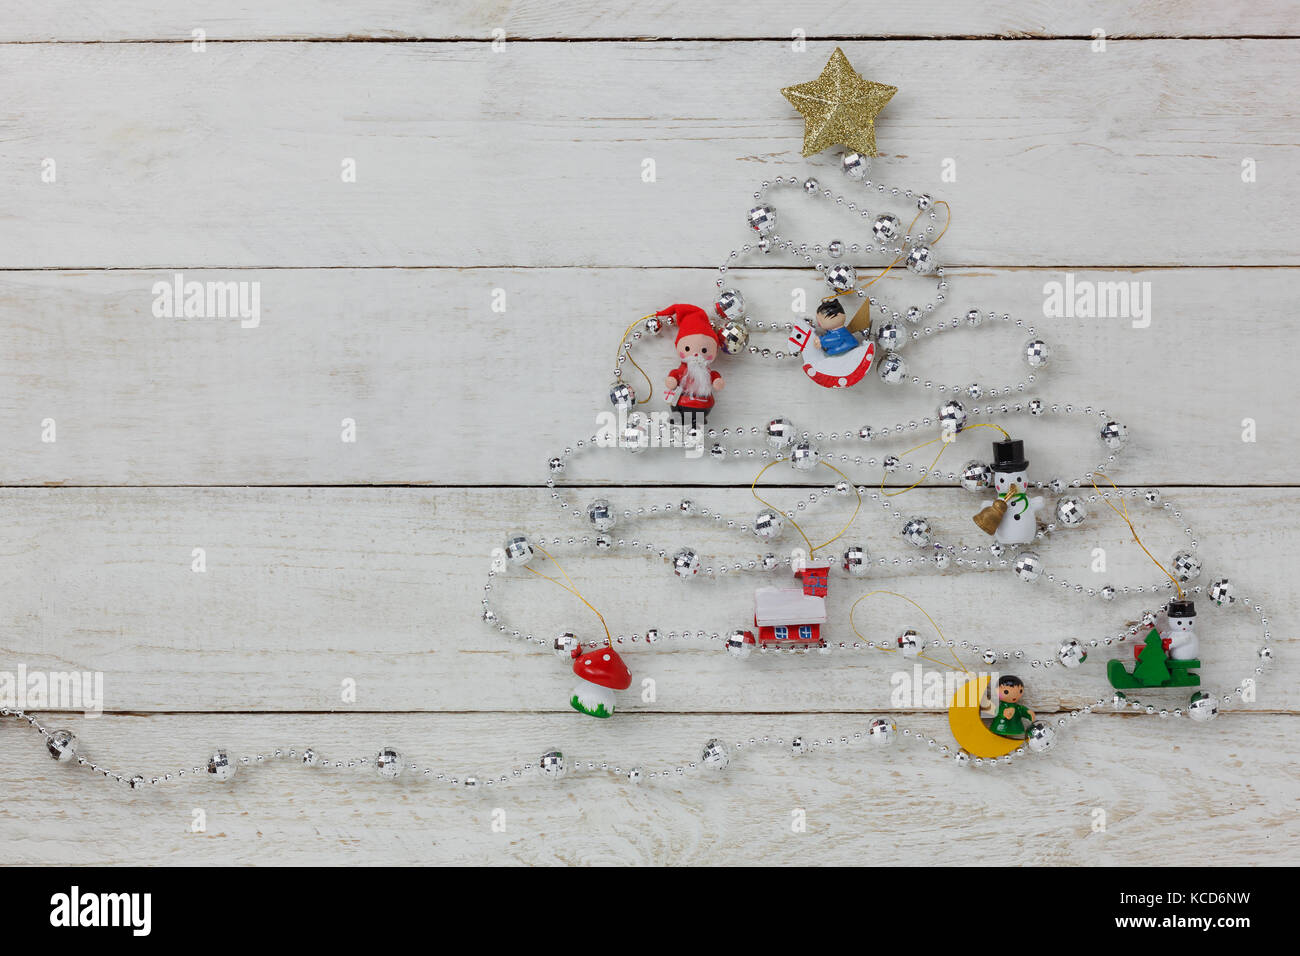 Aerial View Of Merry Christmas Tree With Decorations Concept BackgroundSeveral Items On Modern Rustic White Wooden At Home Office Studio Deskfree Sp